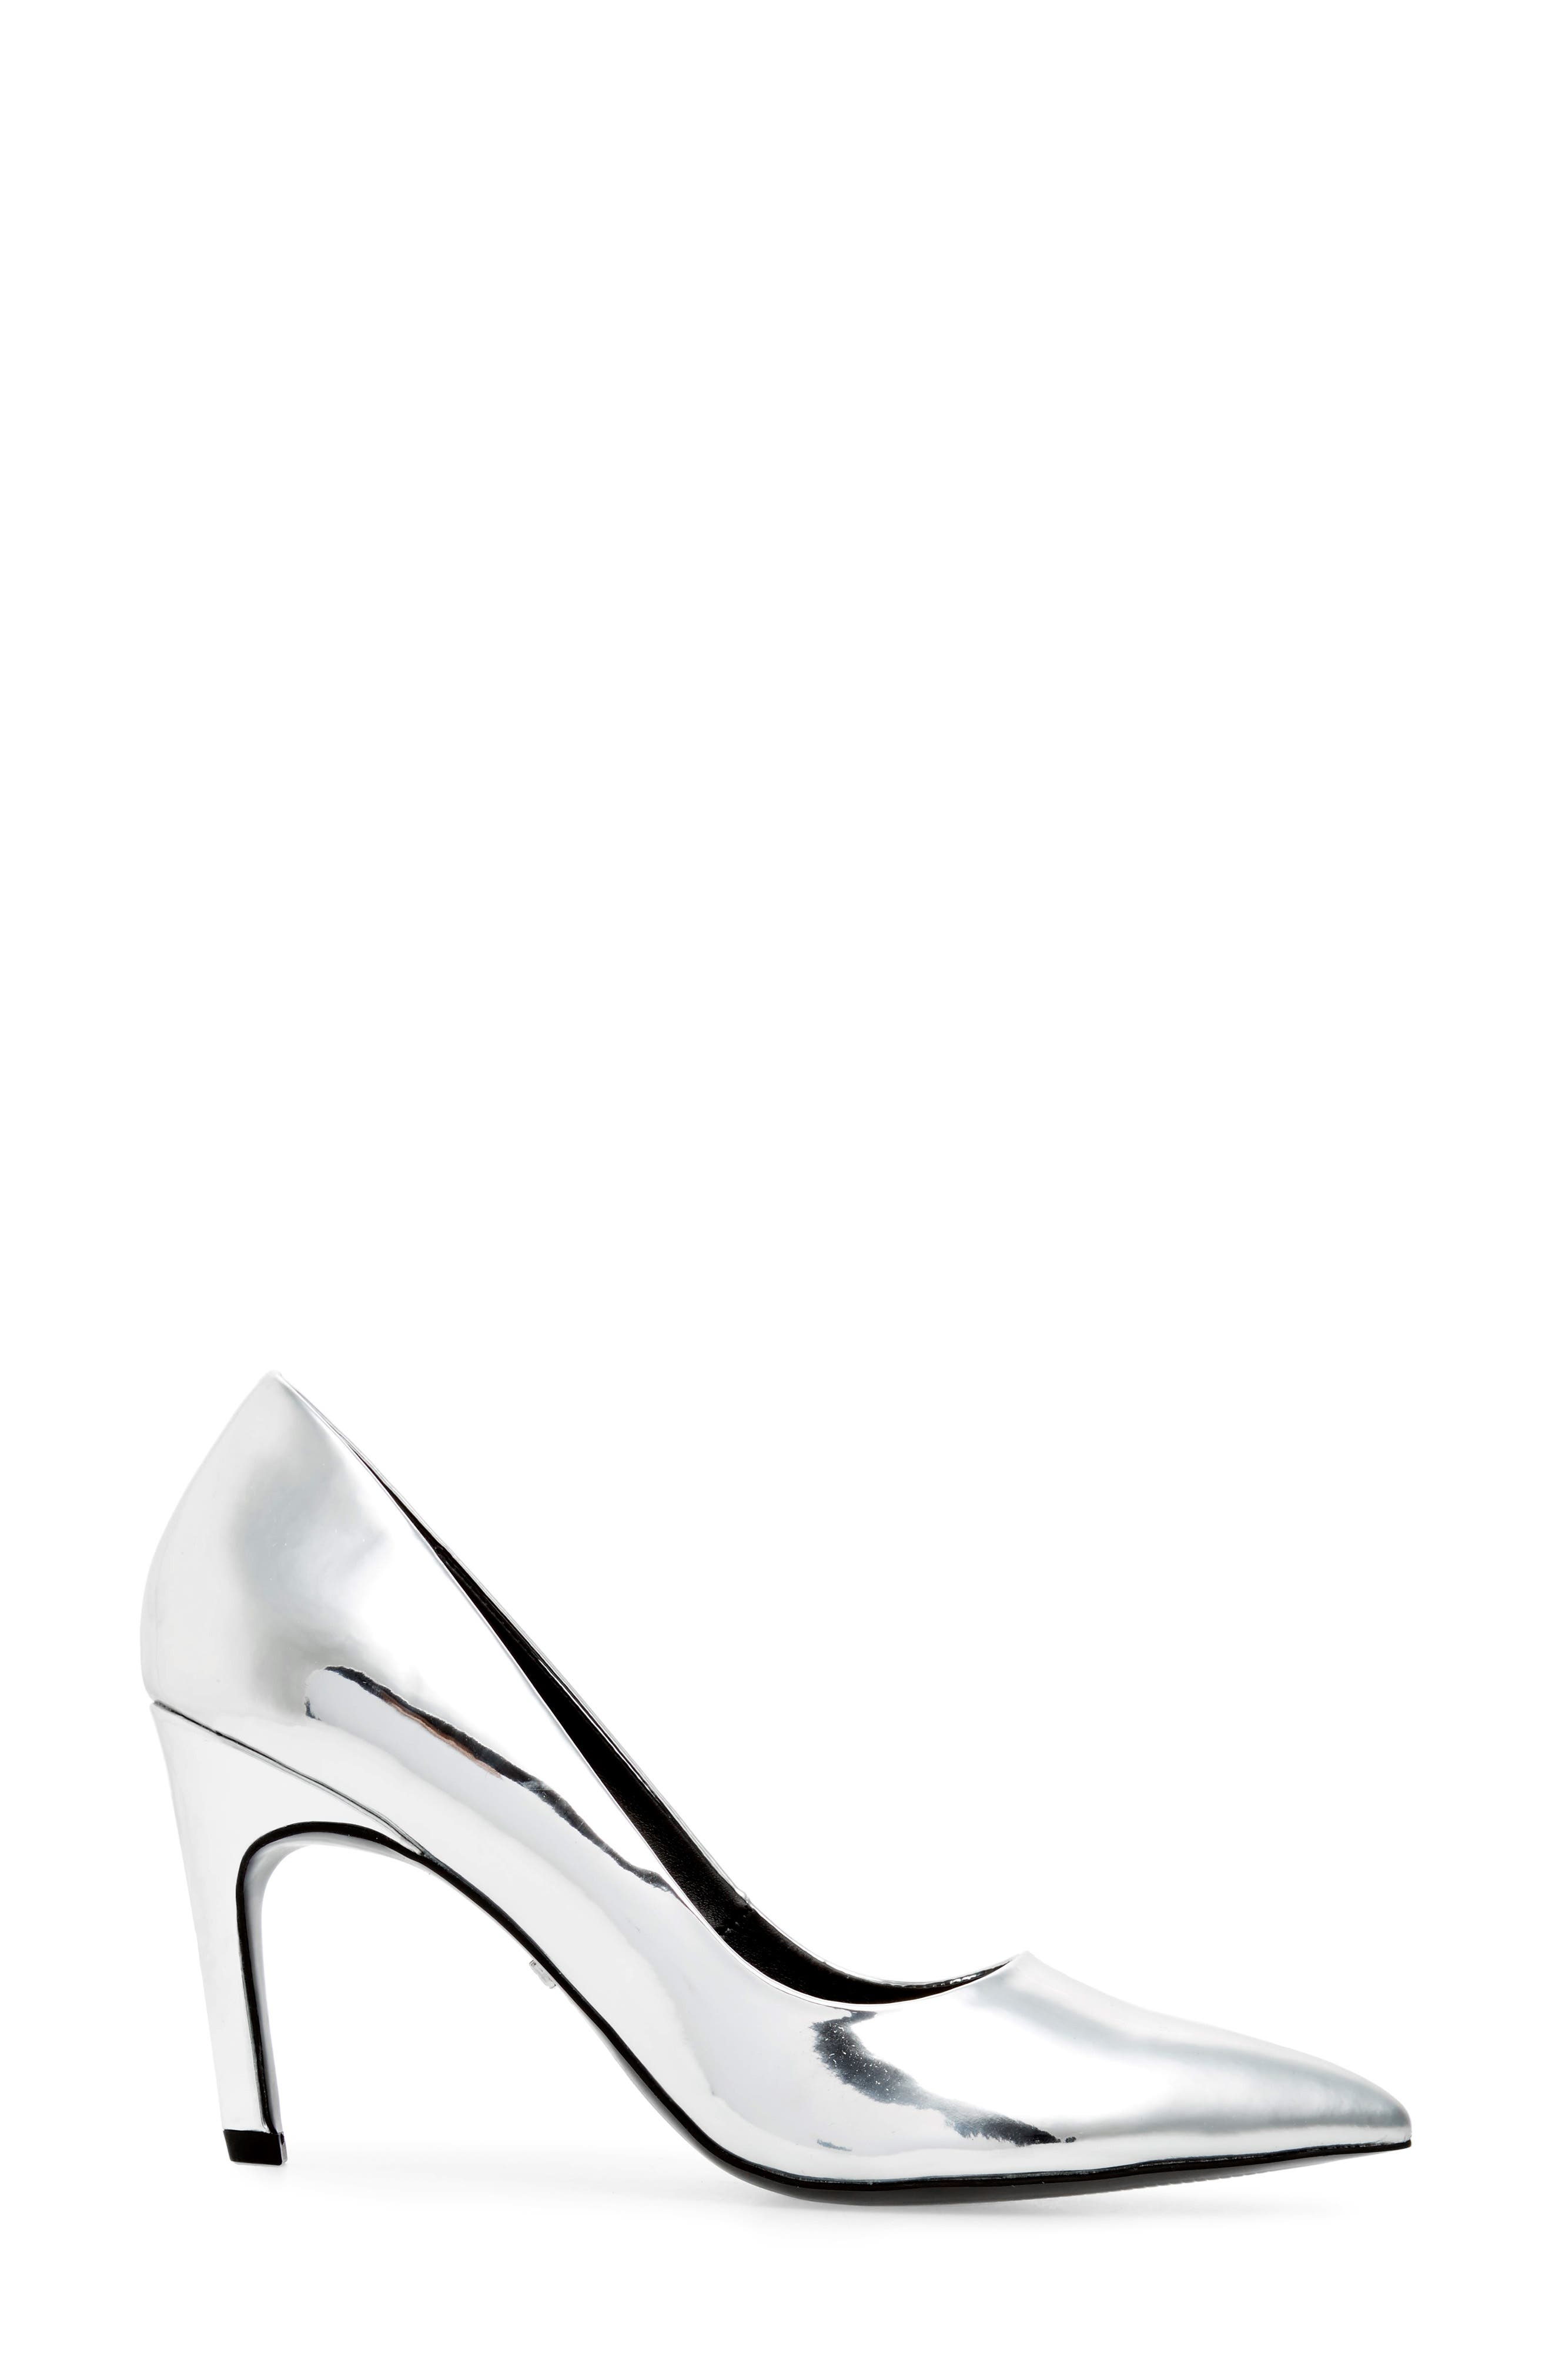 Glimpse Pointy Toe Pump,                             Alternate thumbnail 3, color,